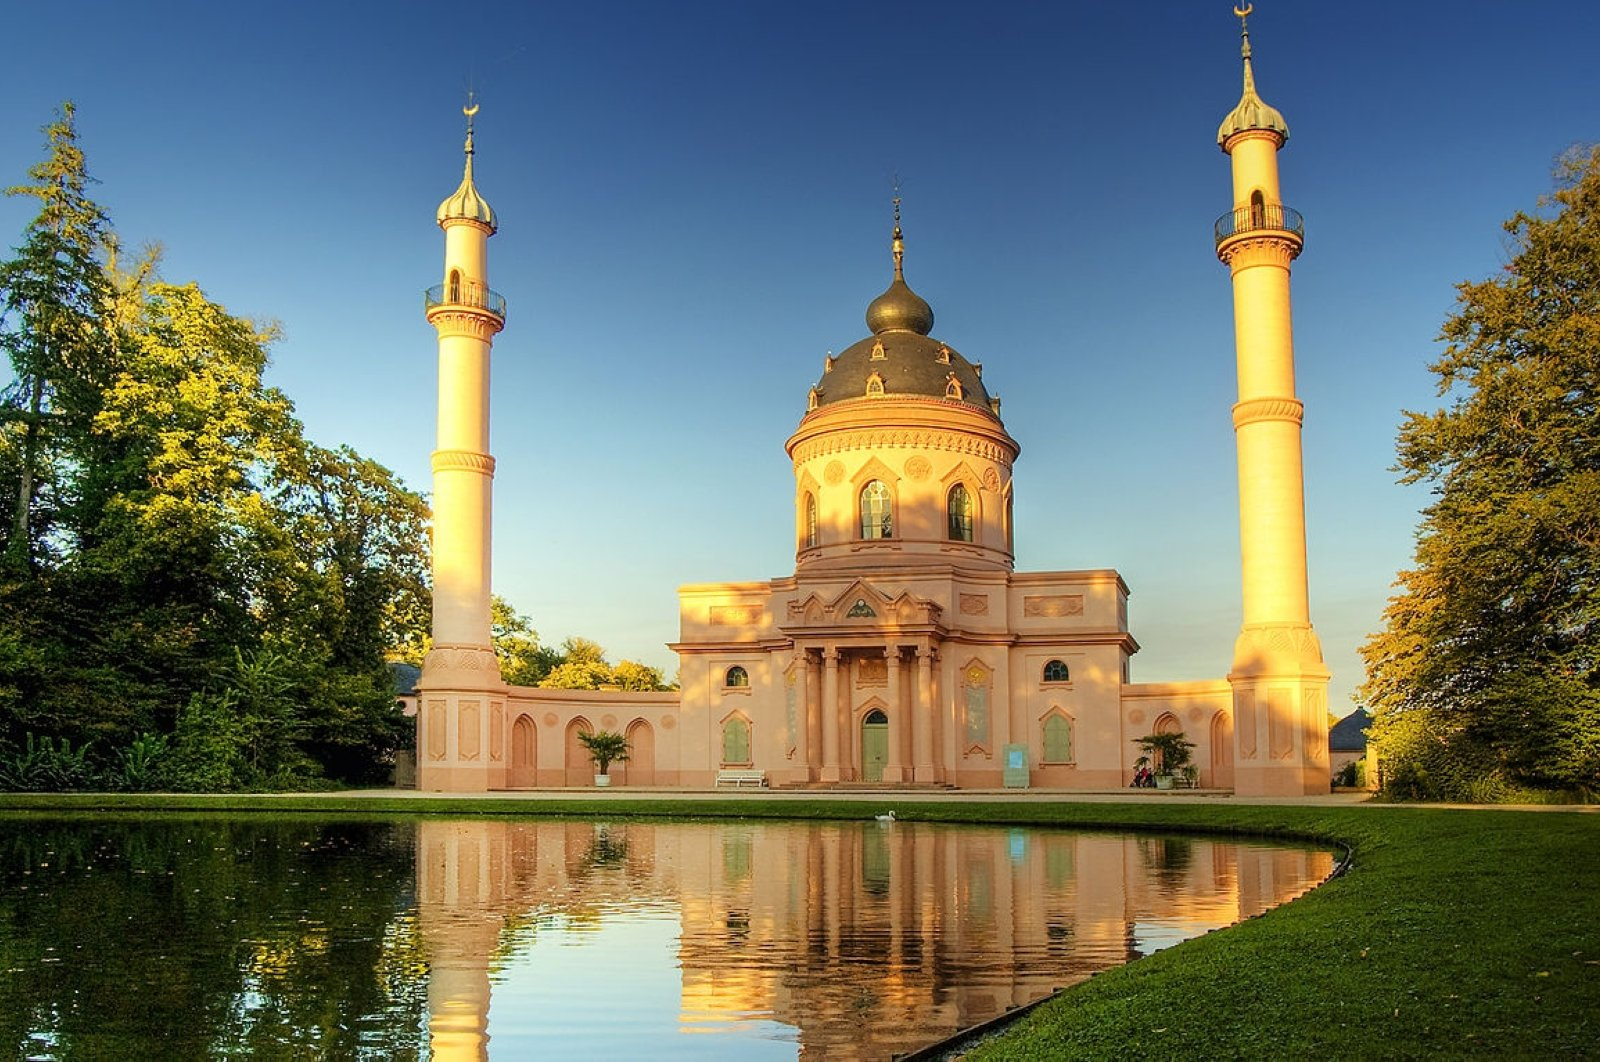 The construction of the Schwetzingen Mosque was completed in 1795.